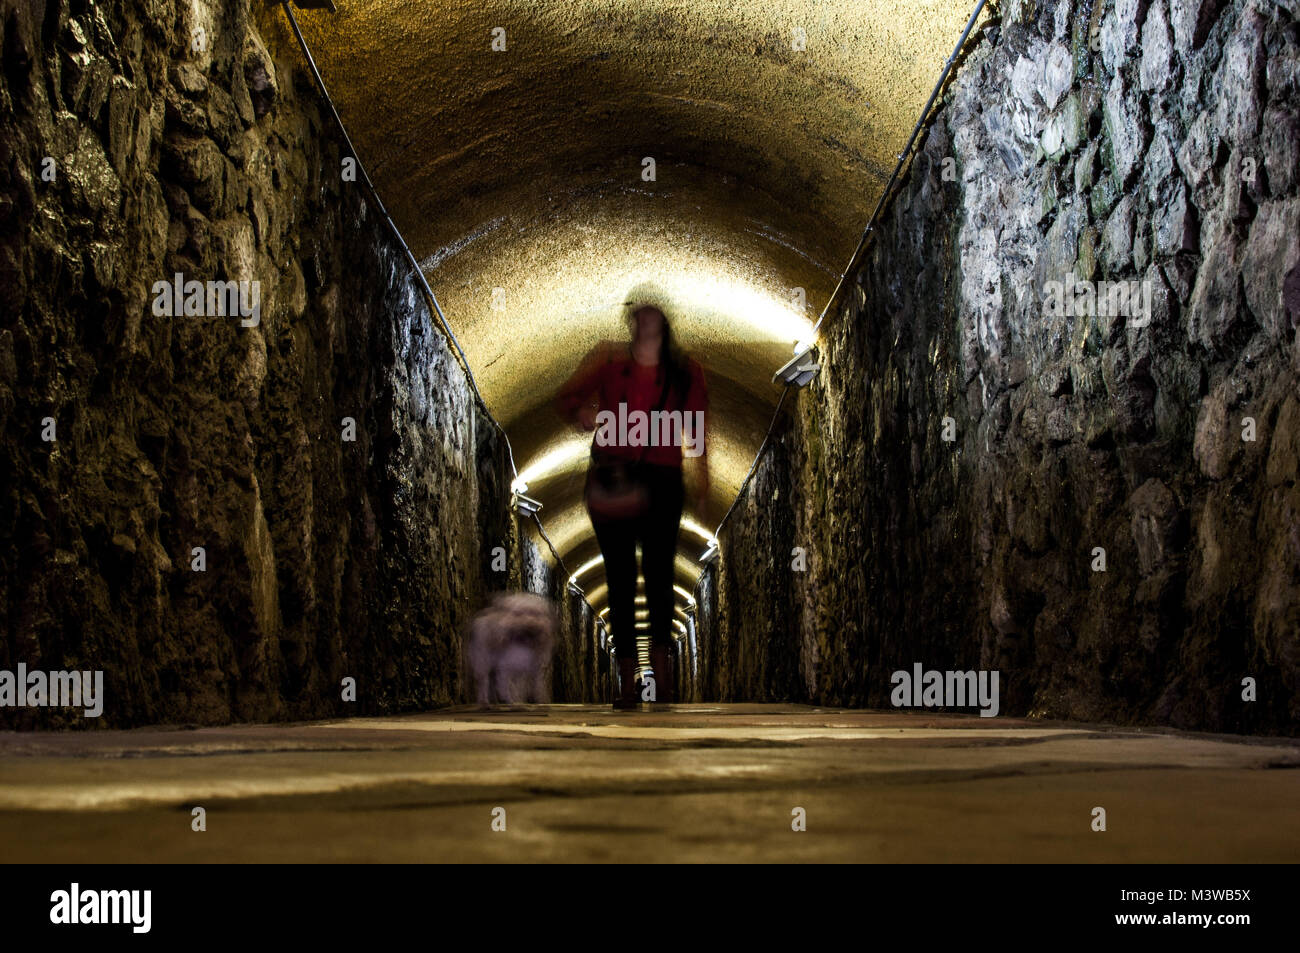 A photo with motion blur of a woman and her dog walking through a dark tunnel with yellow lights - Stock Image